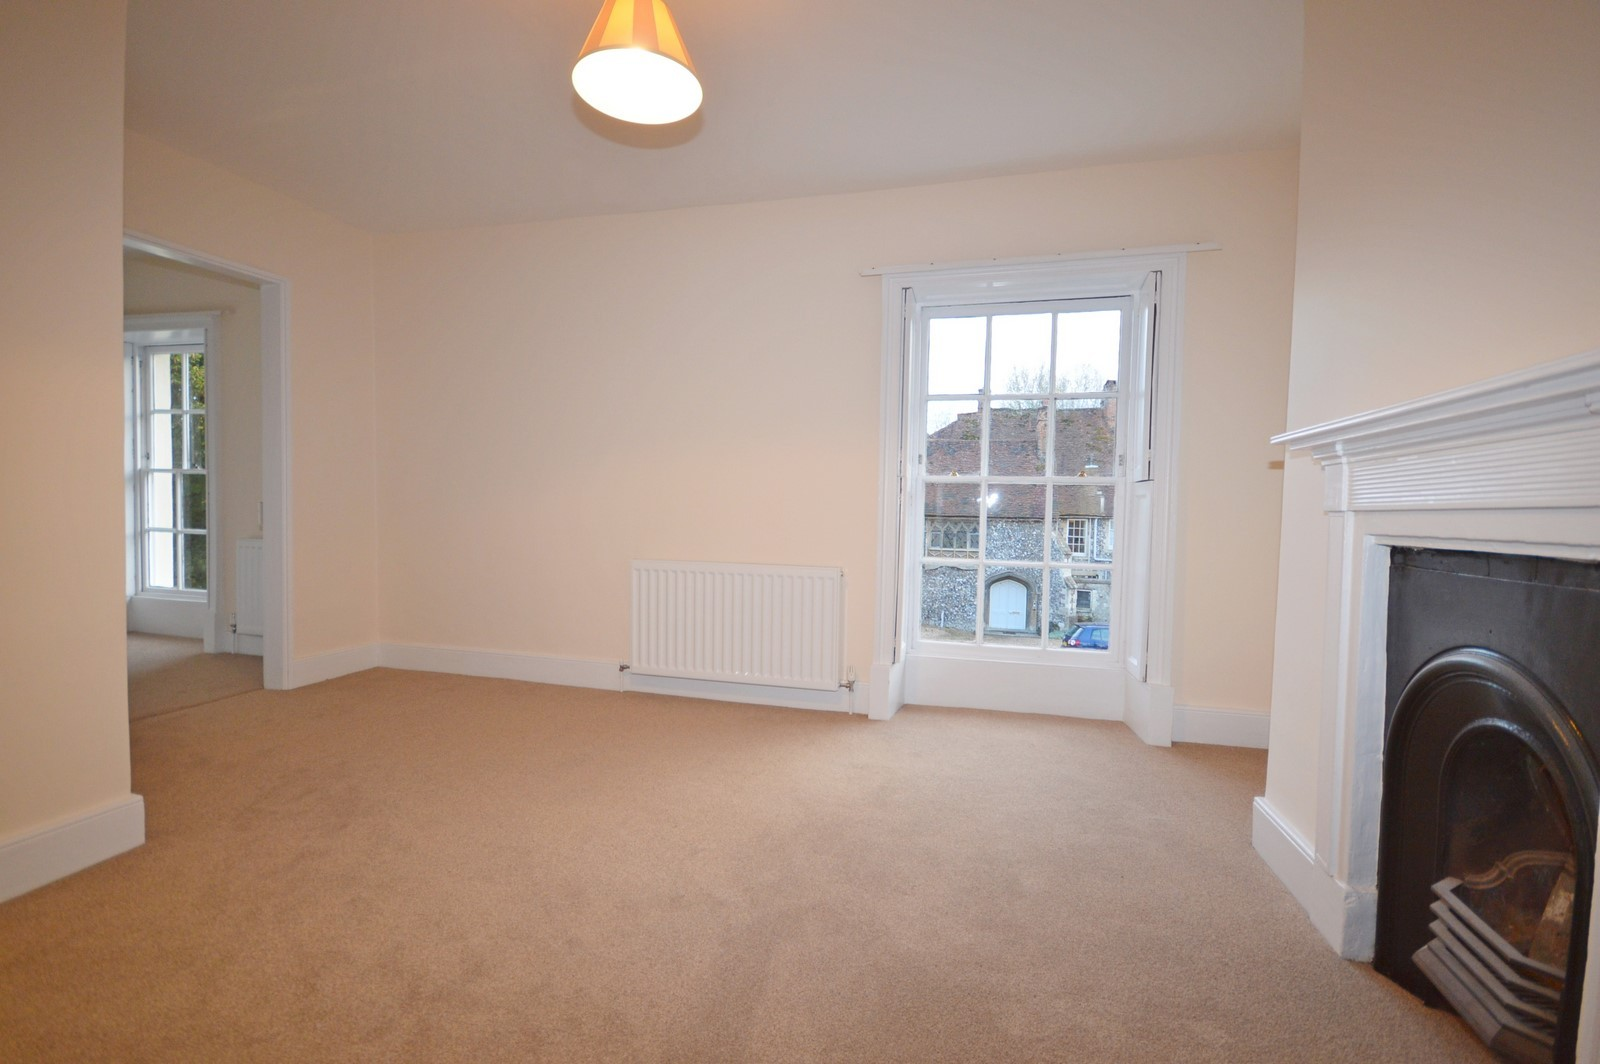 Master Bedroom House to rent in Chichester City Centre